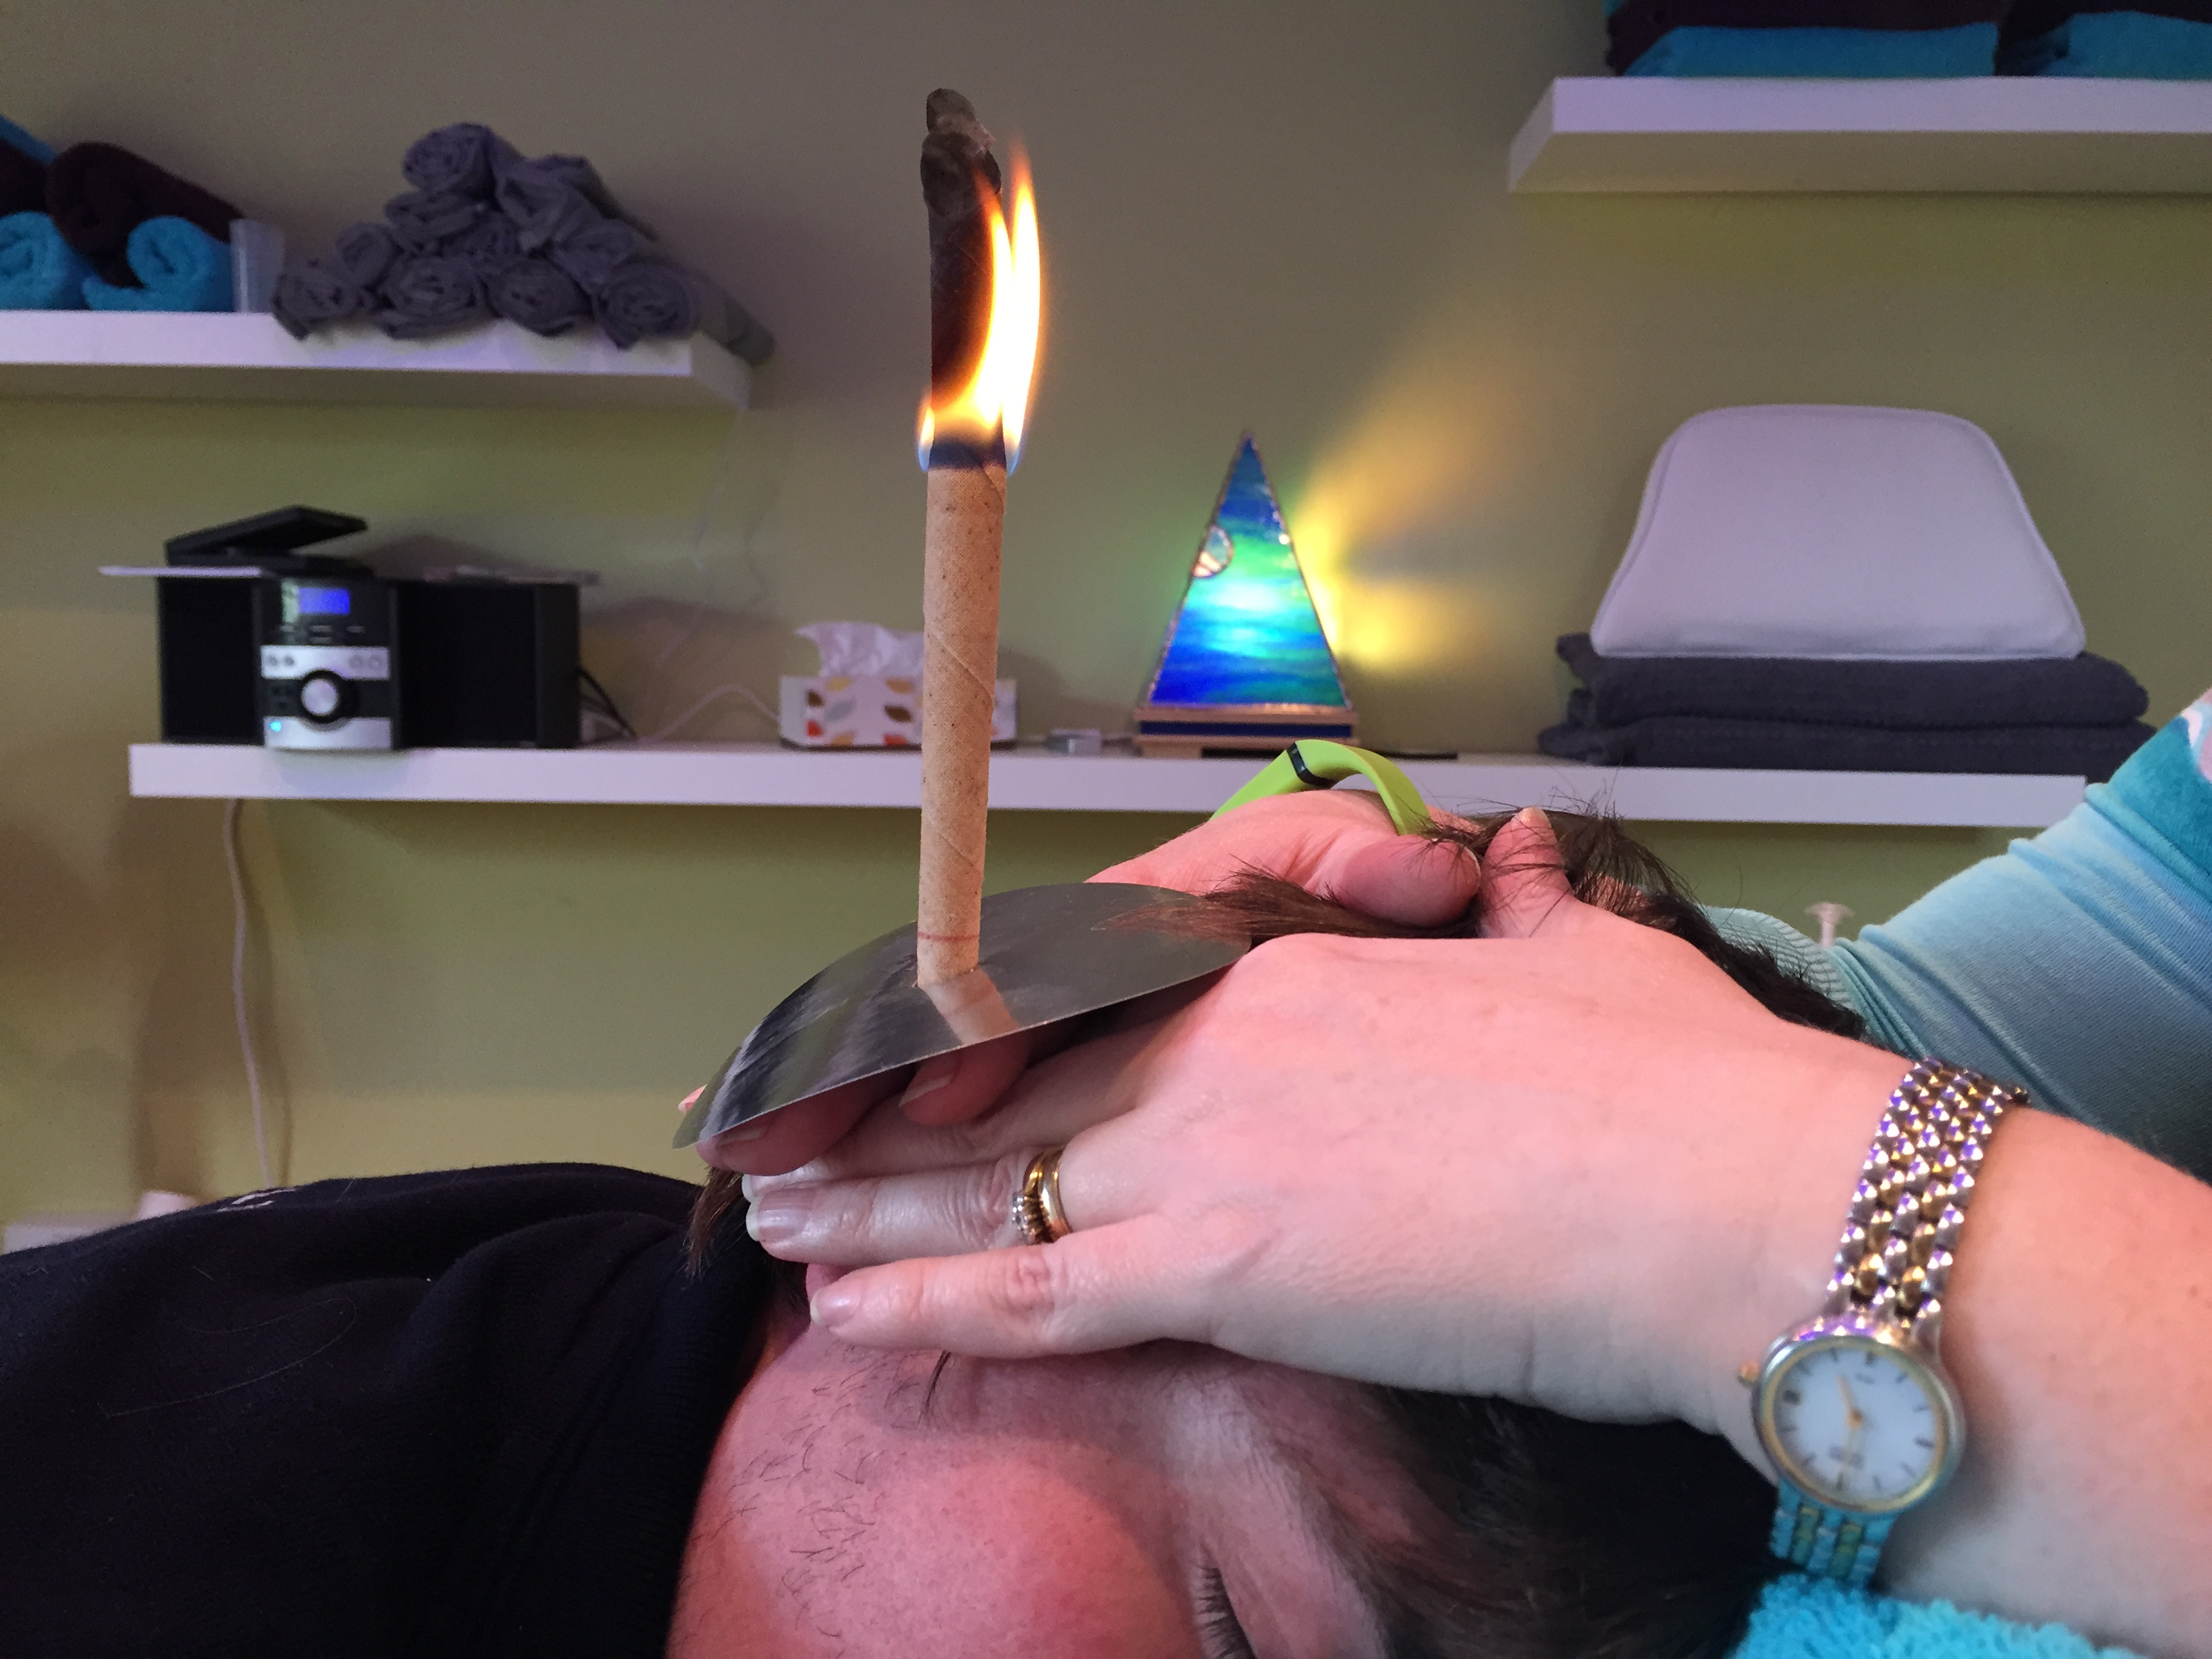 Hopi Ear treatments at therapy station